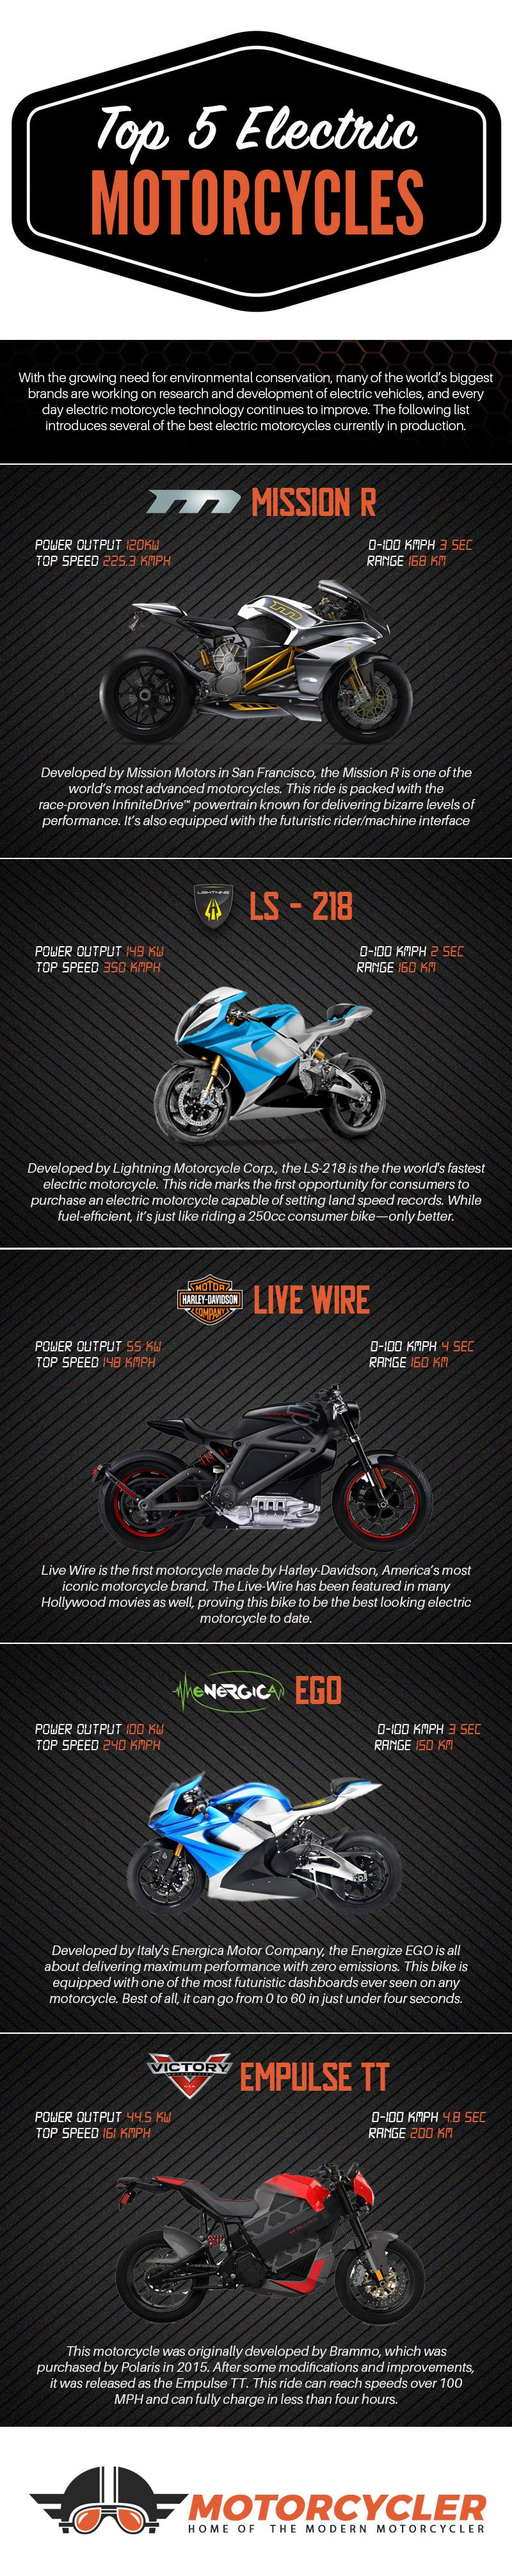 Electric Motorcycle Infographic